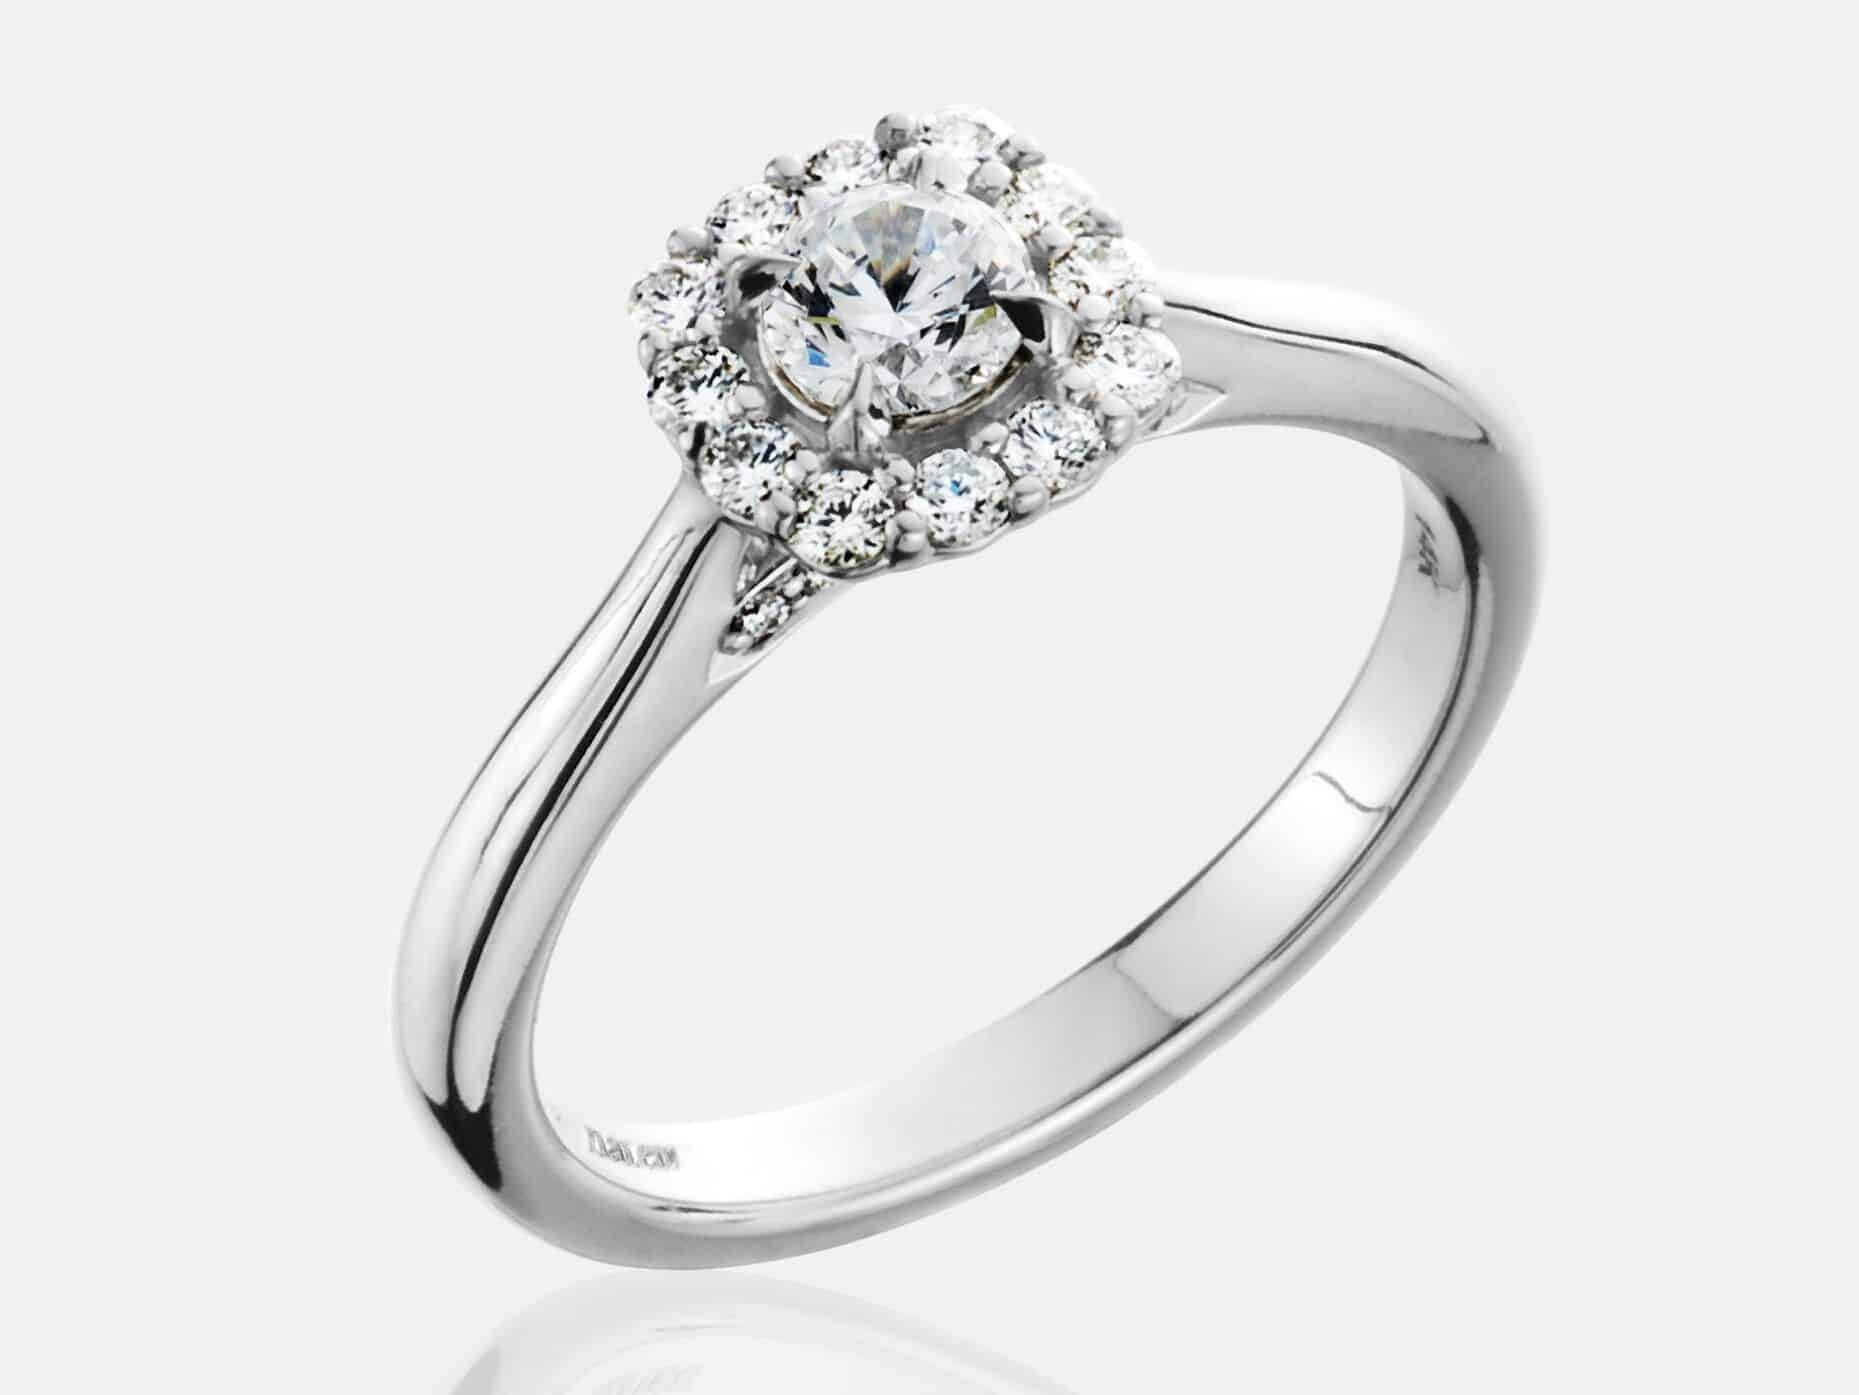 engagement rings profile tolkowsky seamless halo collection dousset prev ring luna jean